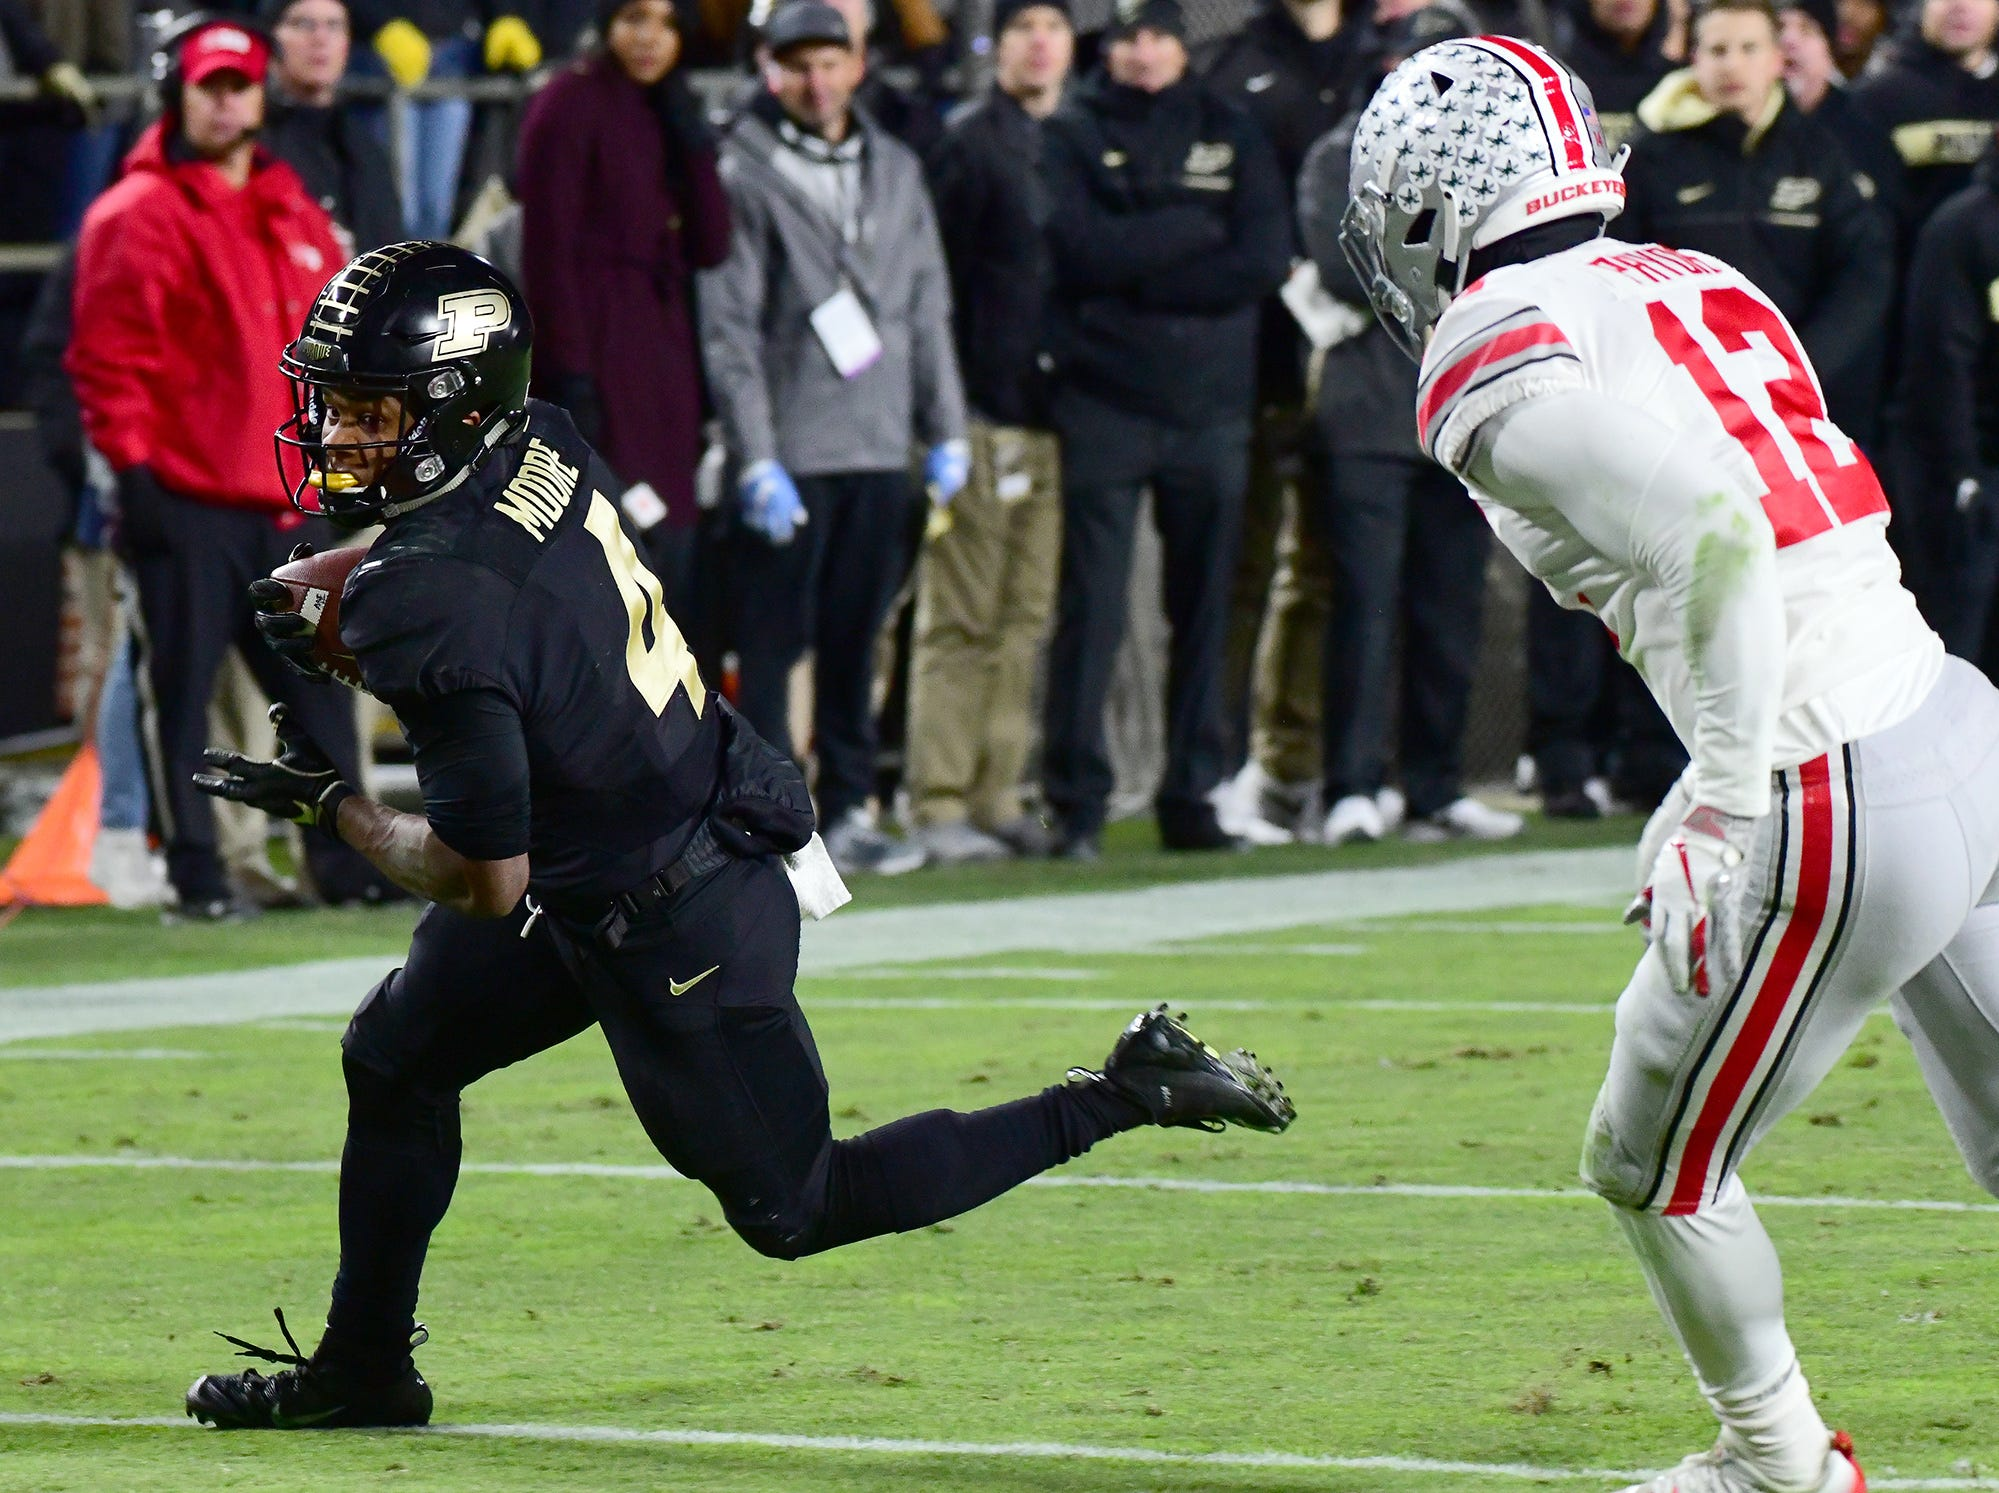 Purdue's Rondale Moore scores as Purdue upsets Ohio State in West Lafayette on Saturday October 20, 2018.